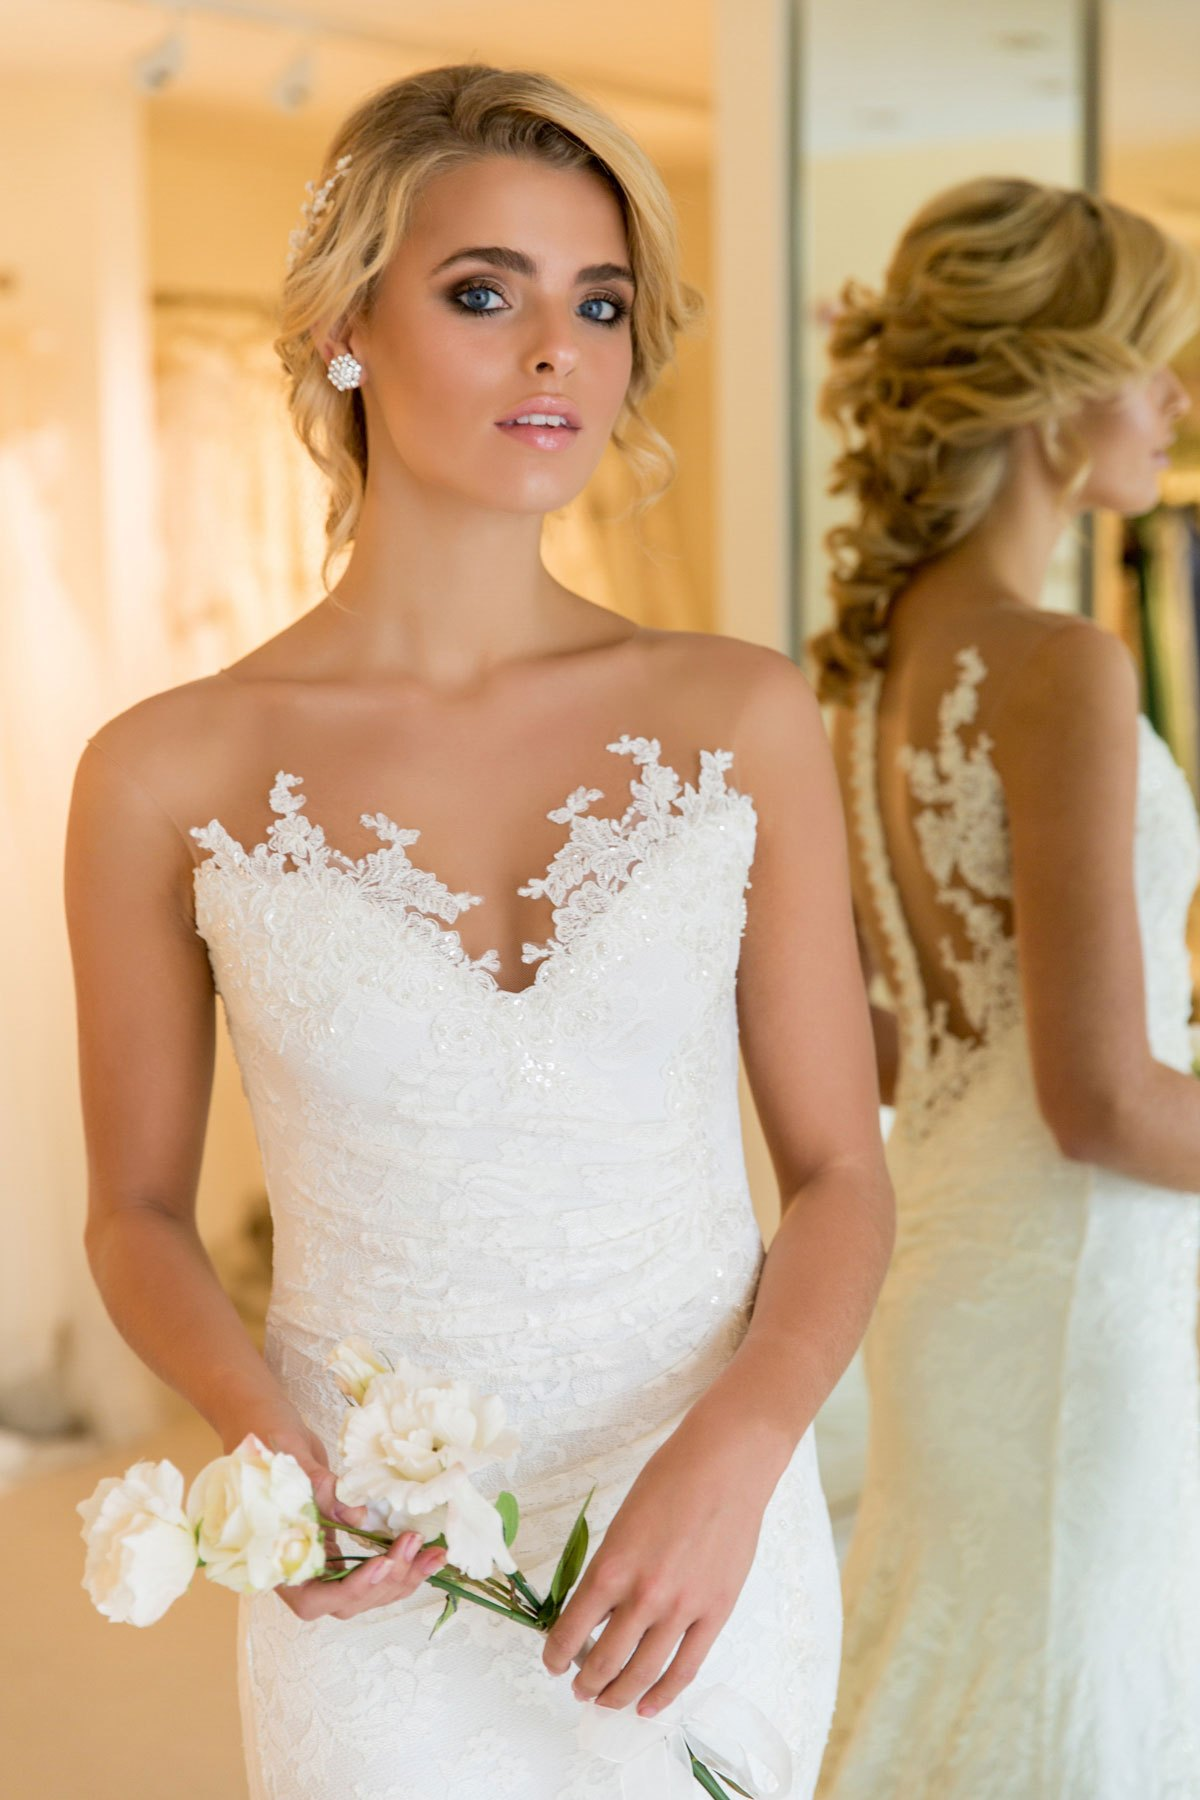 Ursula Stretch Lace Wedding Dress